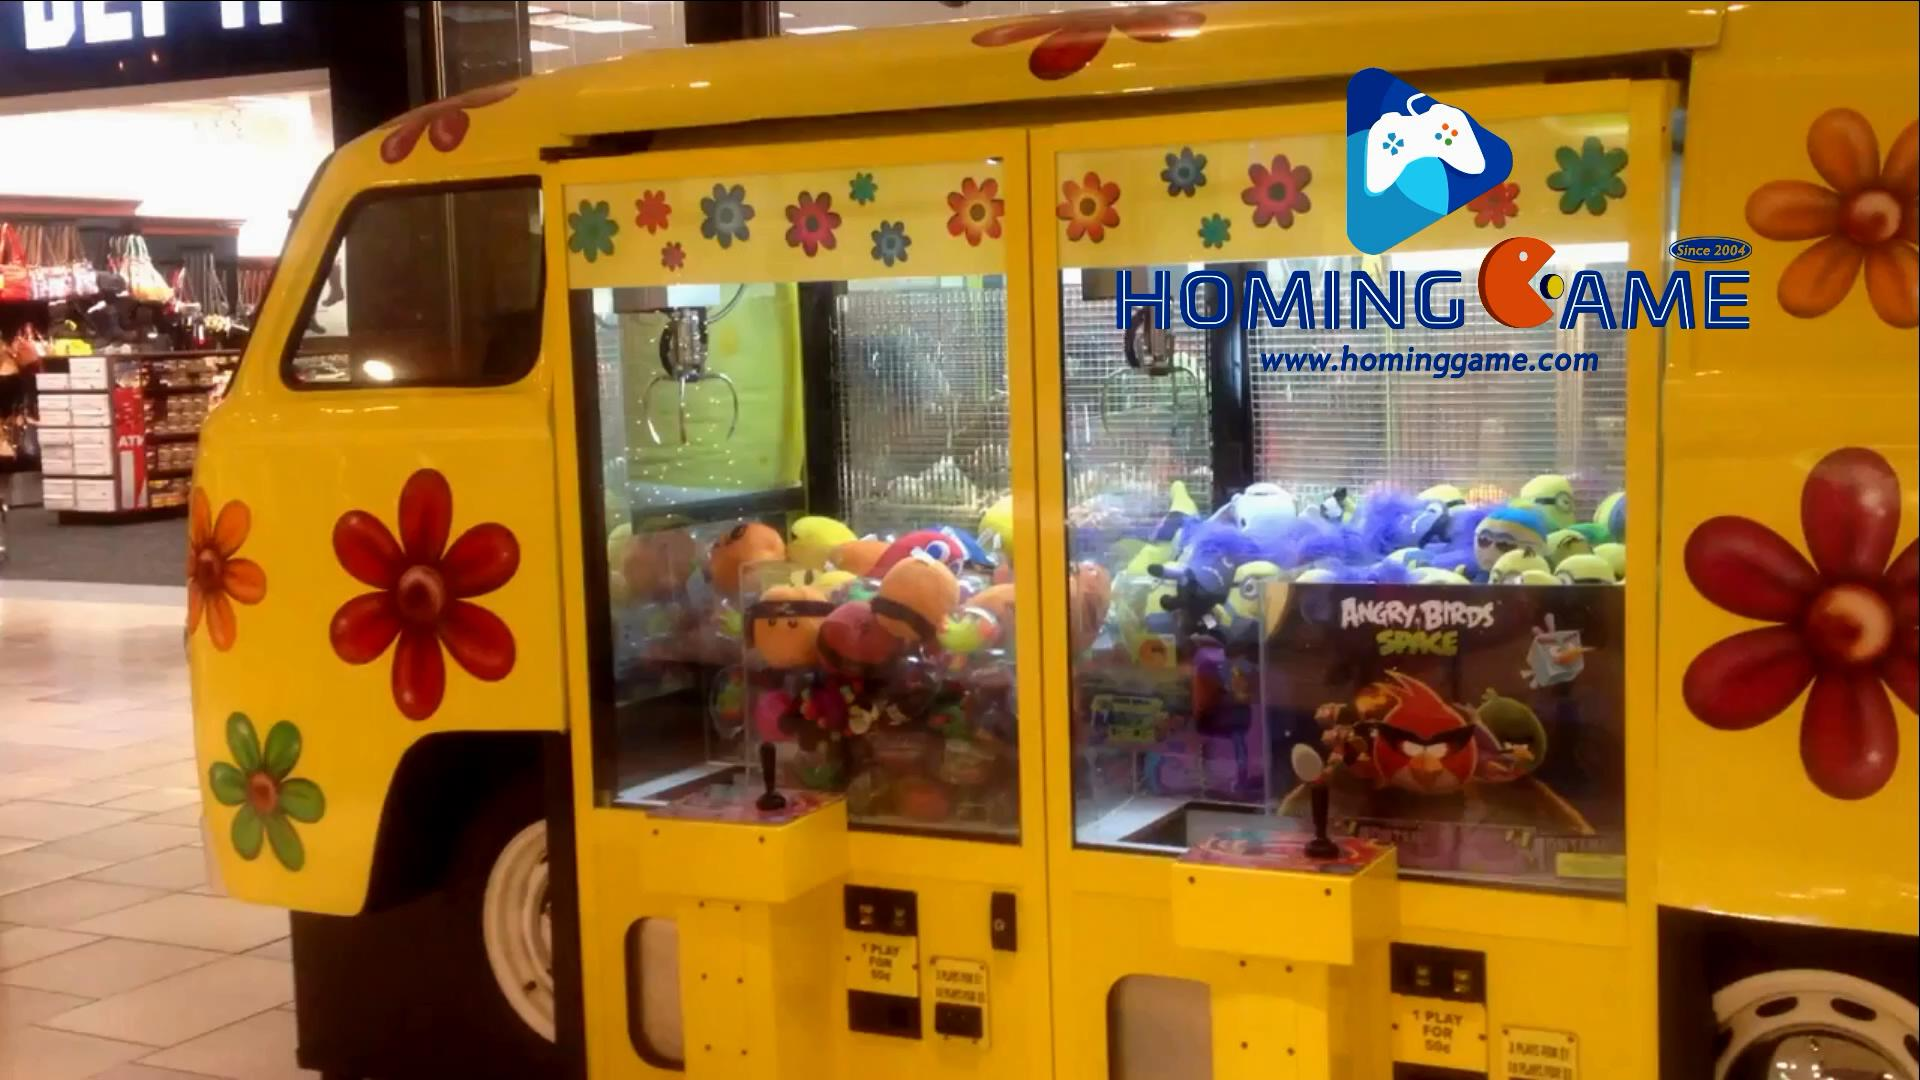 bus crane machine,plush crane machine,plush bus crane machine,crane machine,plush crane game machine,catch plush crane machine,prize game machine,prize vending machine,vending machine,game machine,arcade game machine,coin operated game machine,indoor game machine,electrical game machine,amusement park game equipment,prize vending game machine,vending game,hominggame prize game machine,hominggame crane machine,shopping mall prize game machine,shopping mall crane machine,game zone game machine,game zone crane machine,entertainment game machine,entertainment game,games,arcade games,crane claw machine,hominggame,www.hominggame.com,gametube.hk,www.gametube.hk,vending,prize dispenser prize game machine